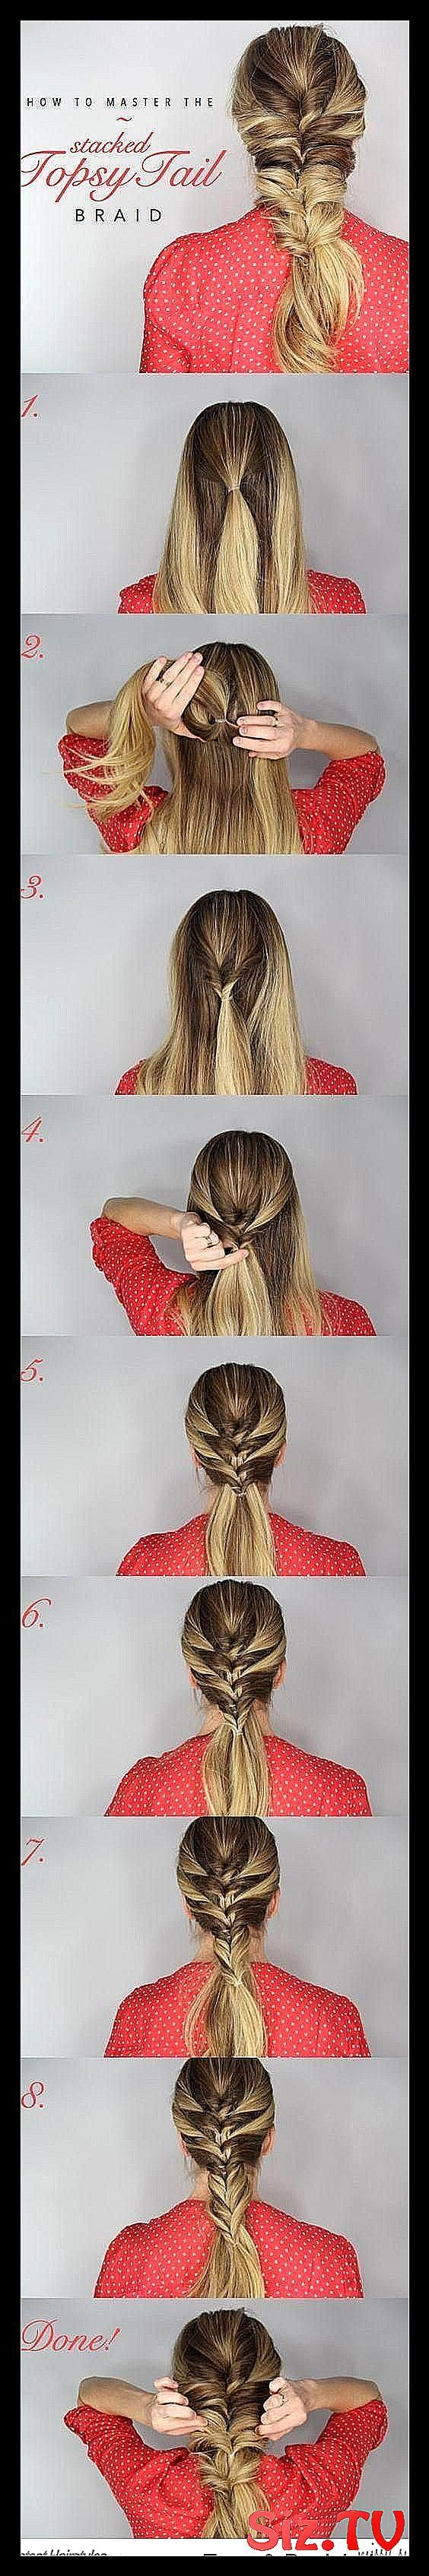 40 Easy Hairstyles for Schools to Try in 2016 40 Easy Hairstyles for Schools to Try in 2016, ... 40 Easy Hairstyles for Schools to Try in 2016 40 Easy Hairstyles for Schools to Try in 2016, ...,